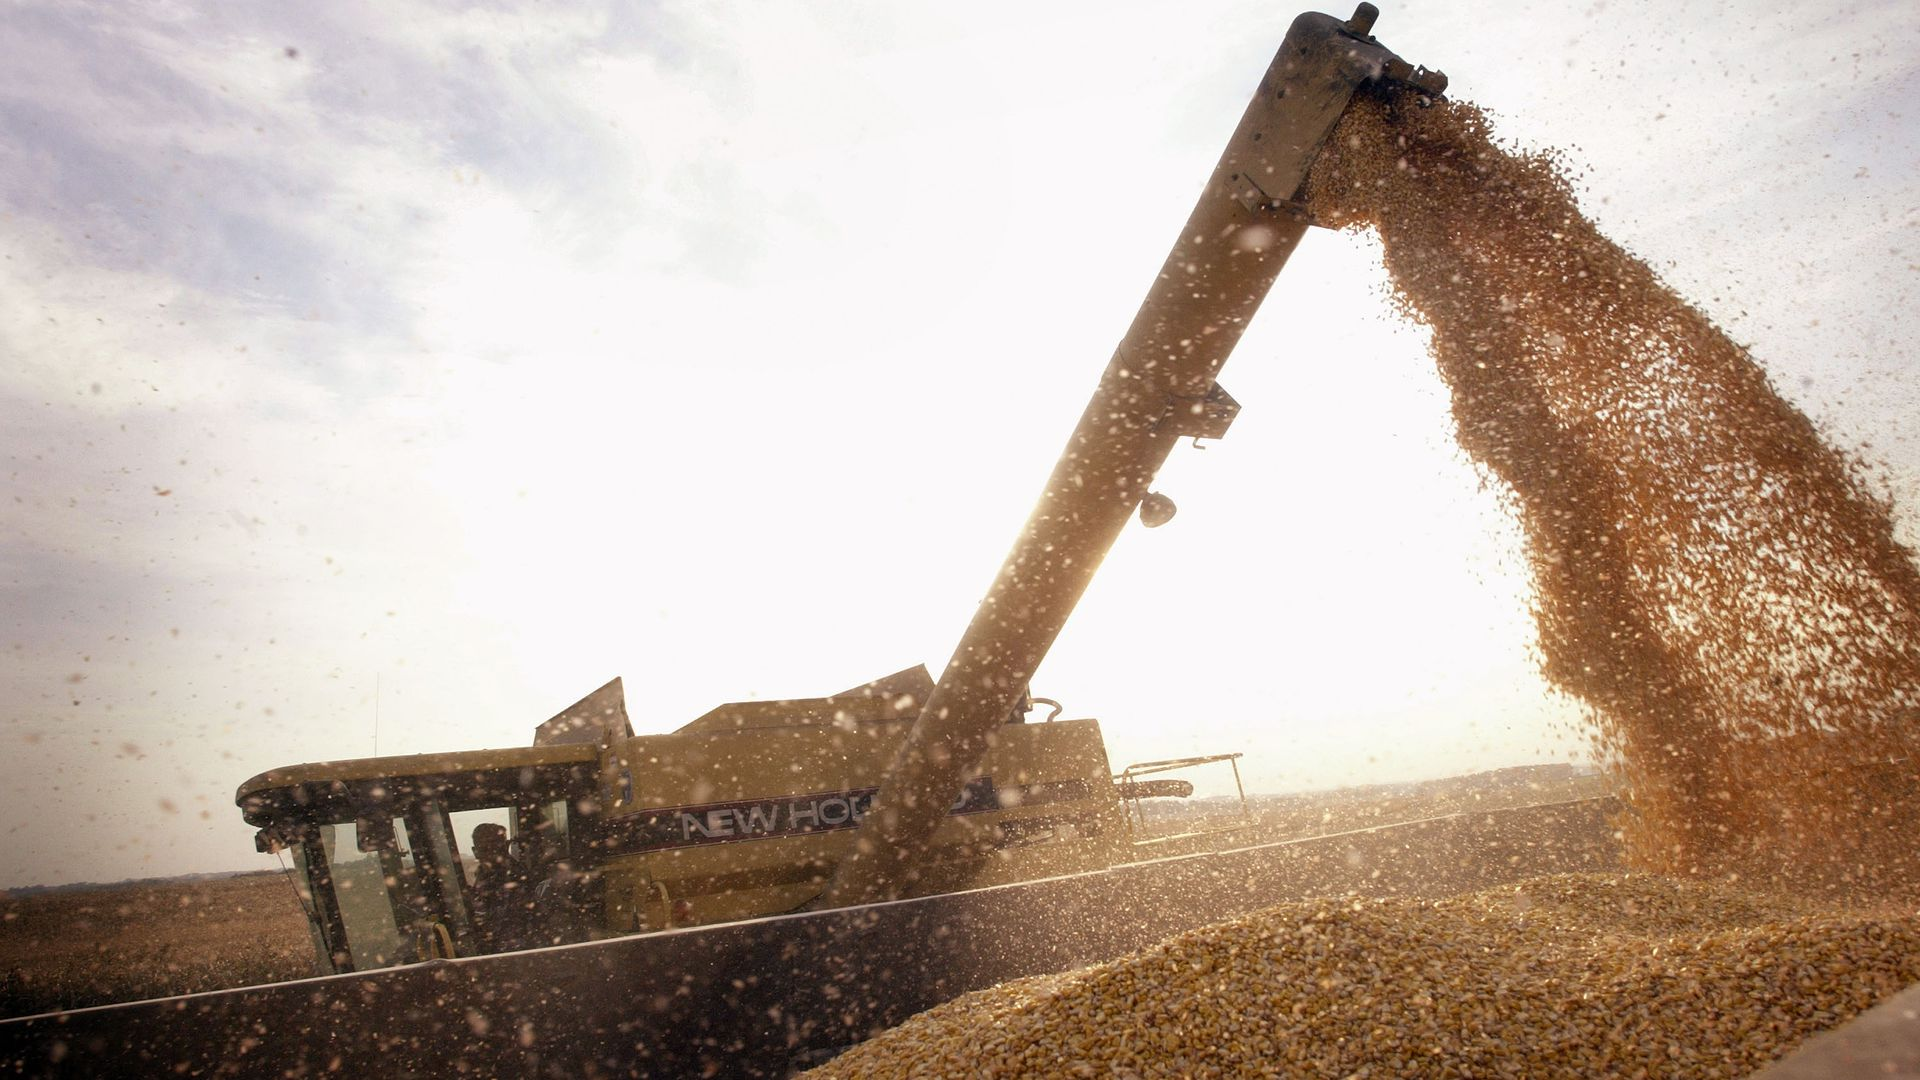 John Shedd, 85, loads a container with Bt-corn harvested from his son's farm October 9, 2003 near Rockton, Illinois.